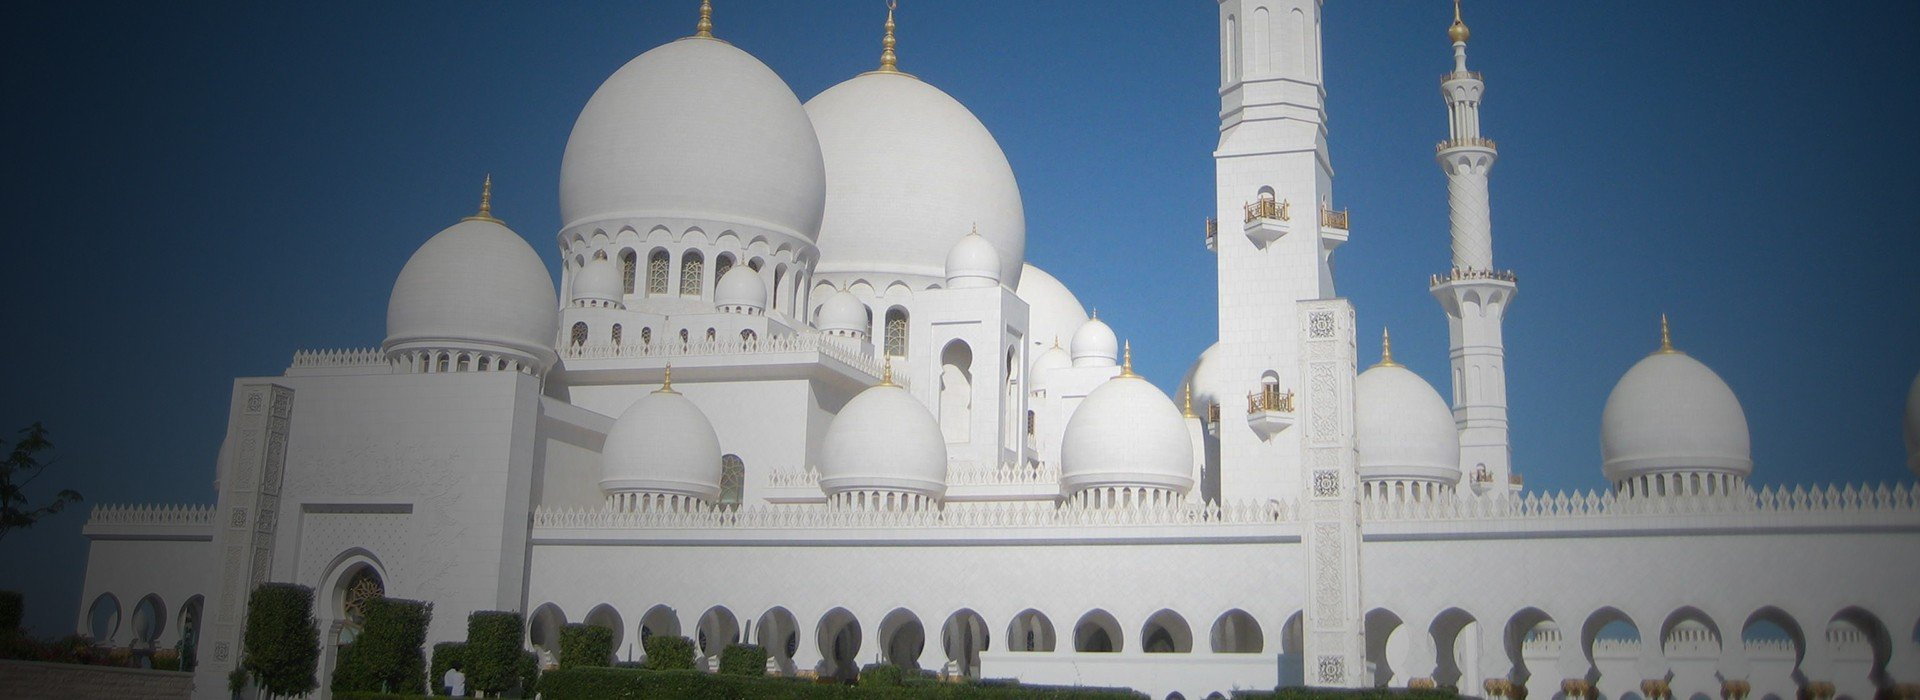 Full Day Abu Dhabi City Tour with Grand Mosque & Louvre